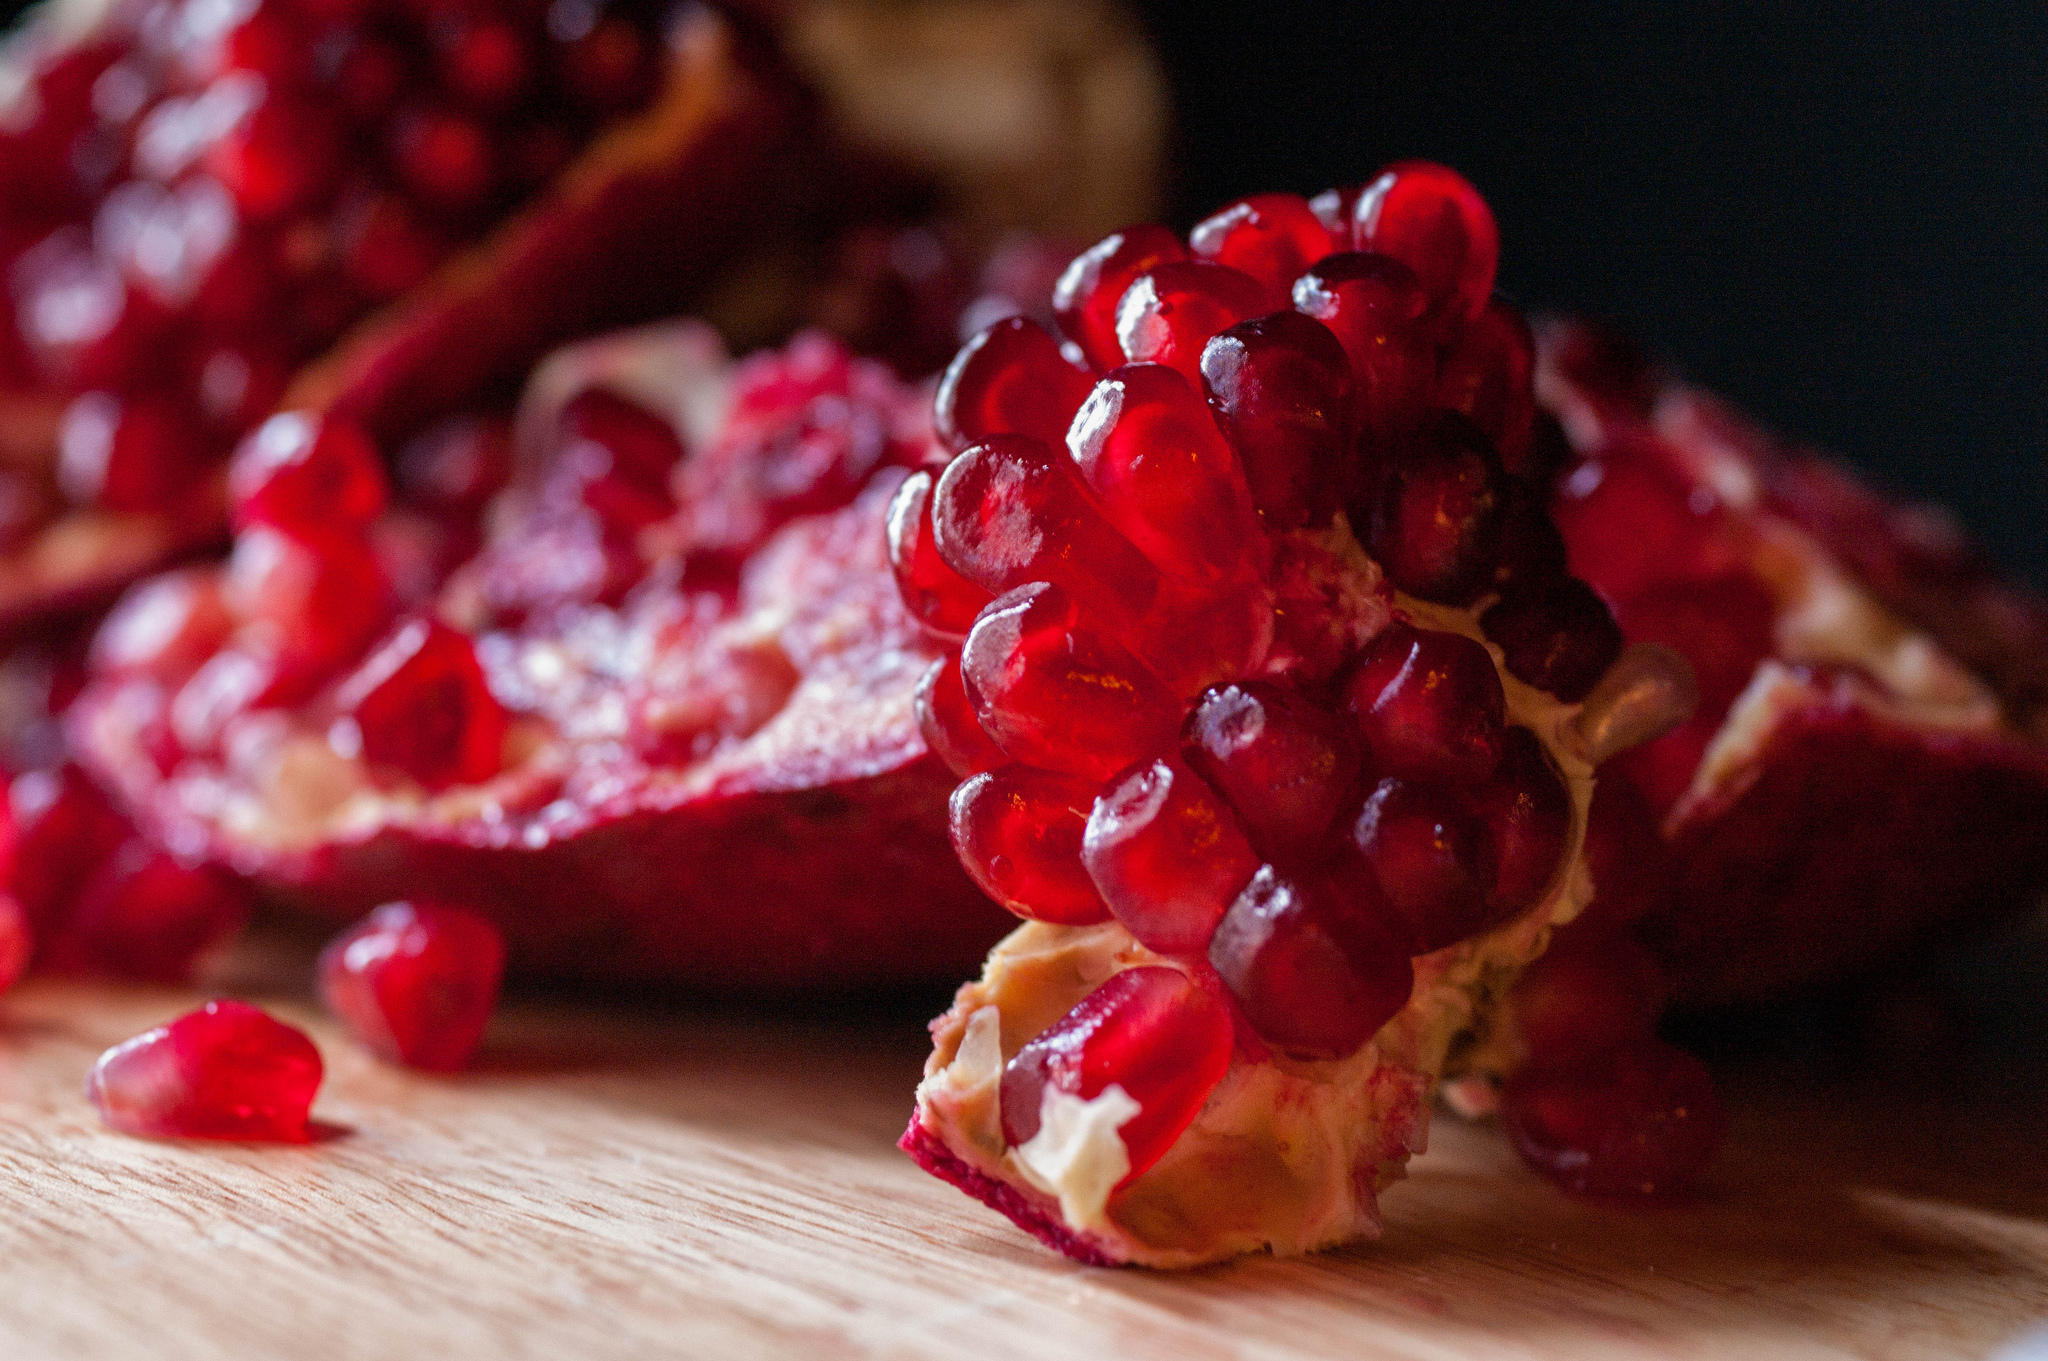 Pomegranate Health Benefits The Fruit Helps Protect